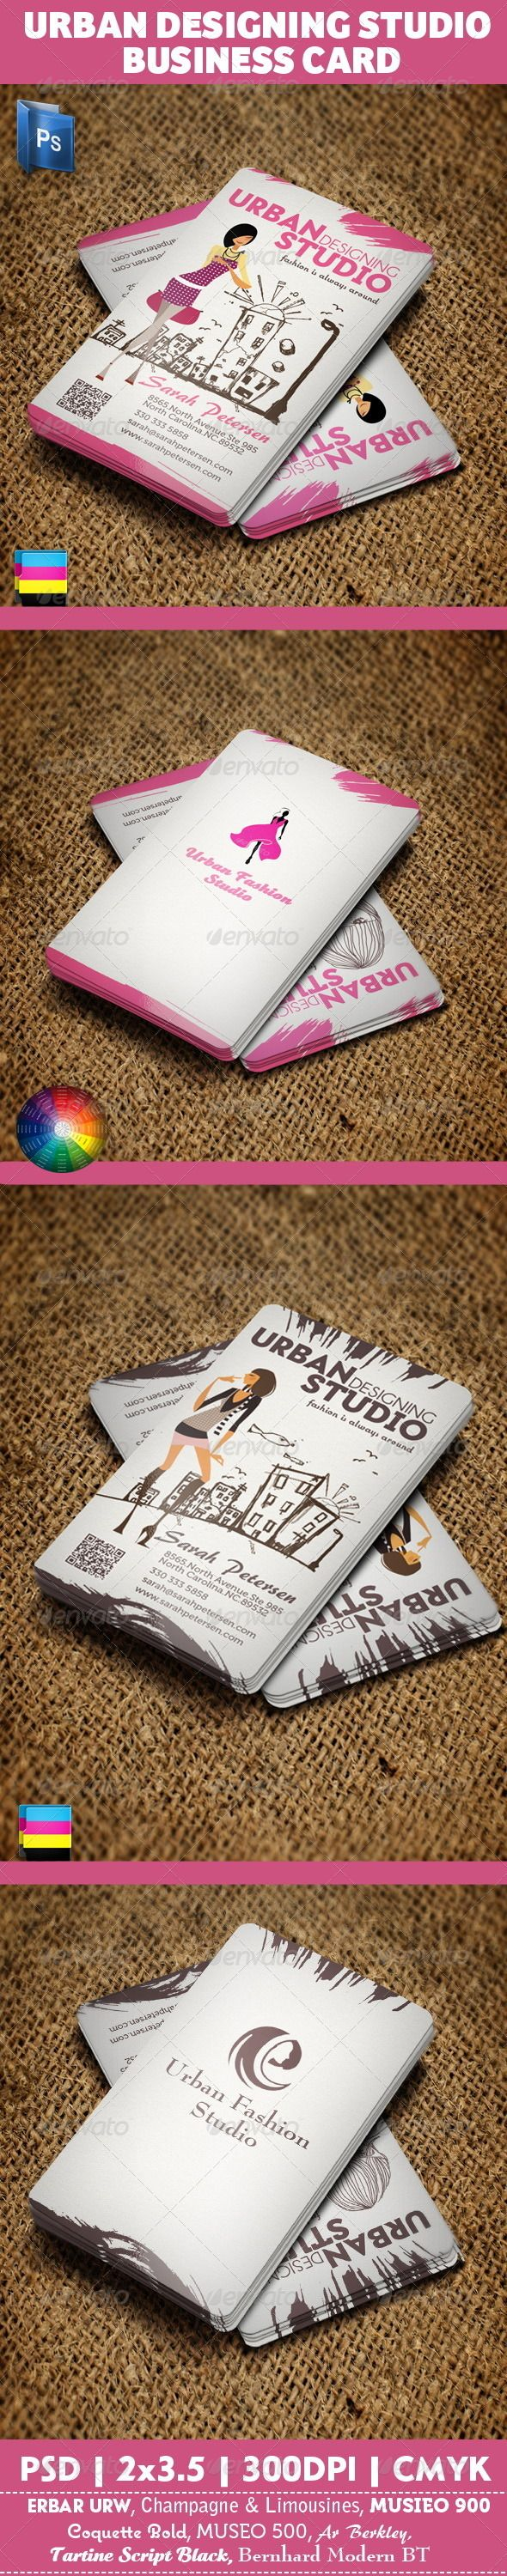 136 best business cards images on pinterest business cards urban fashion studio business card magicingreecefo Images